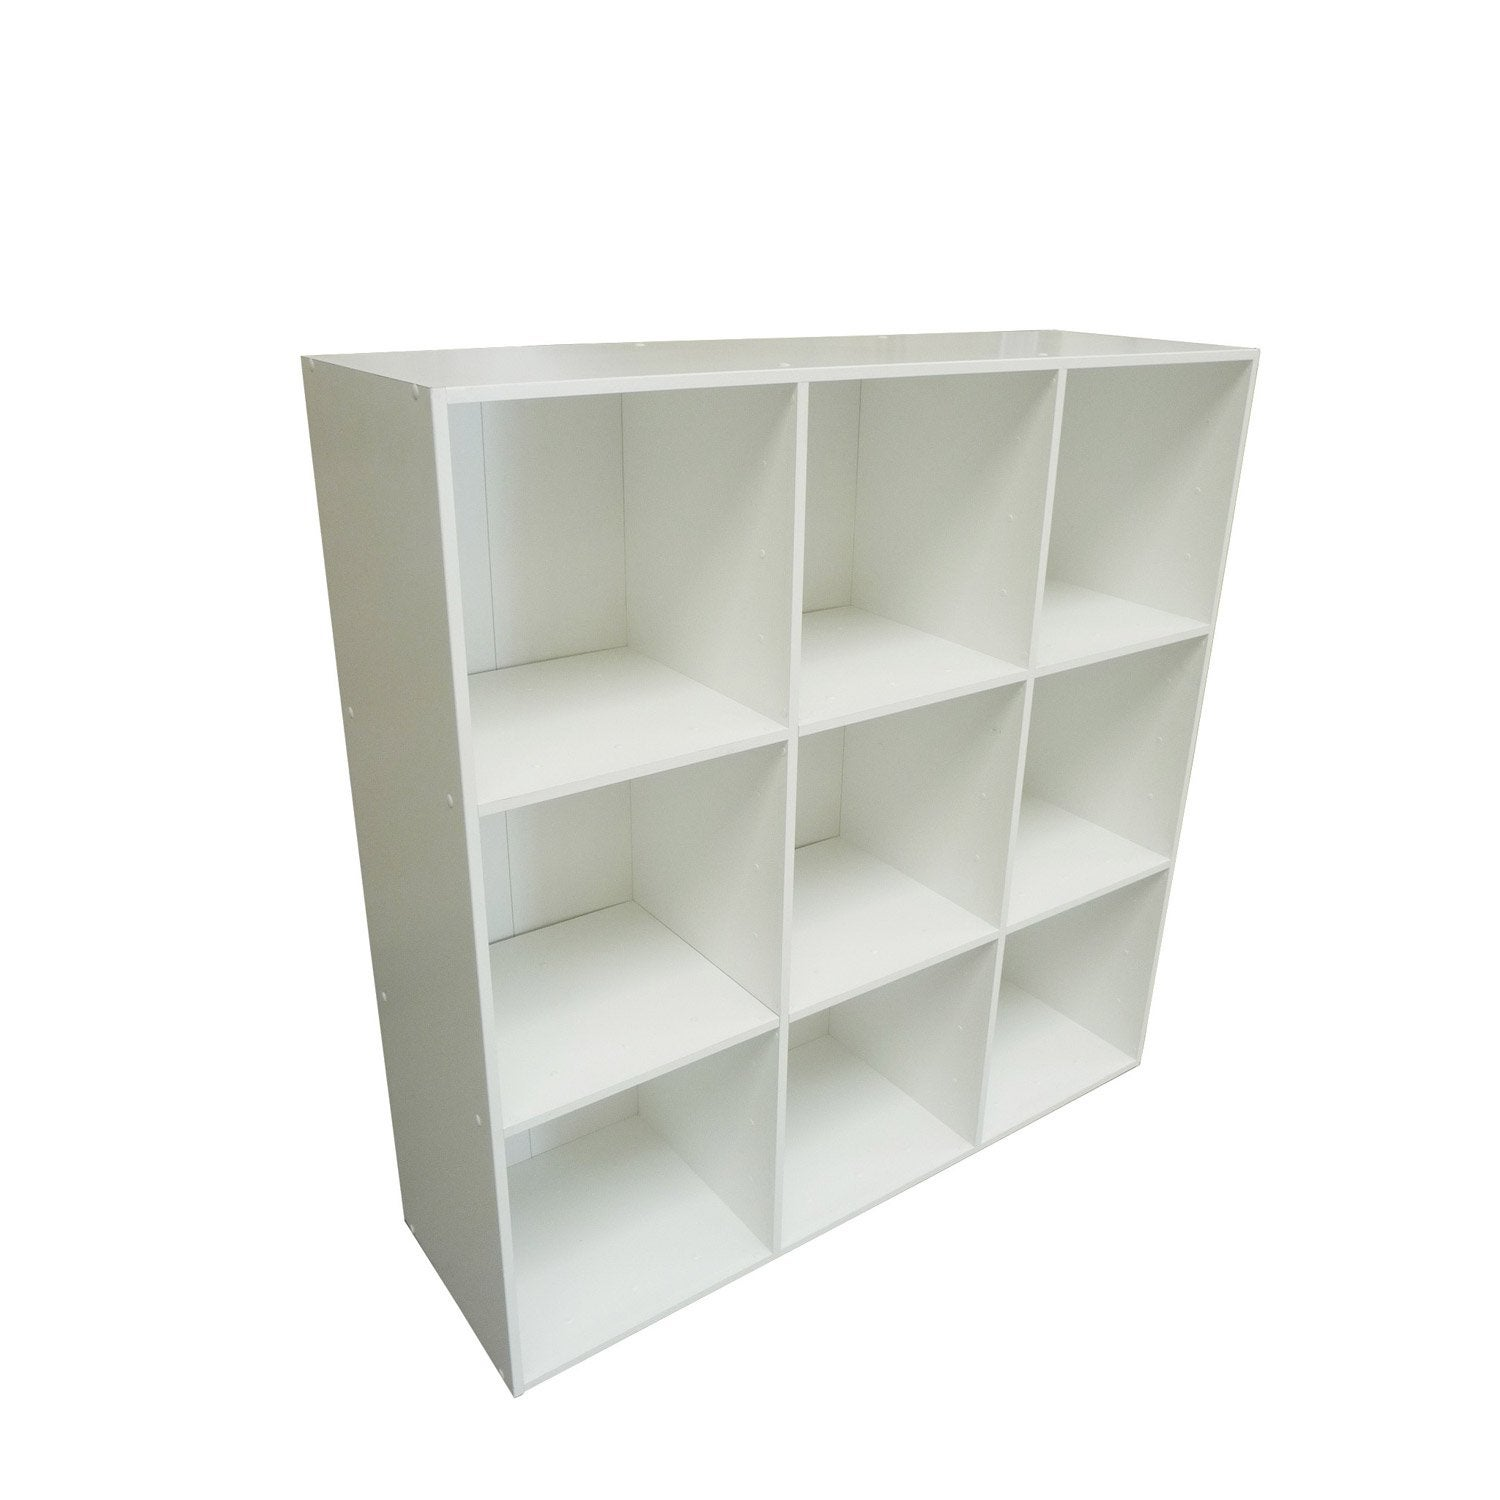 Etag re 9 cases multikaz blanc x x for Etagere murale avec rebord